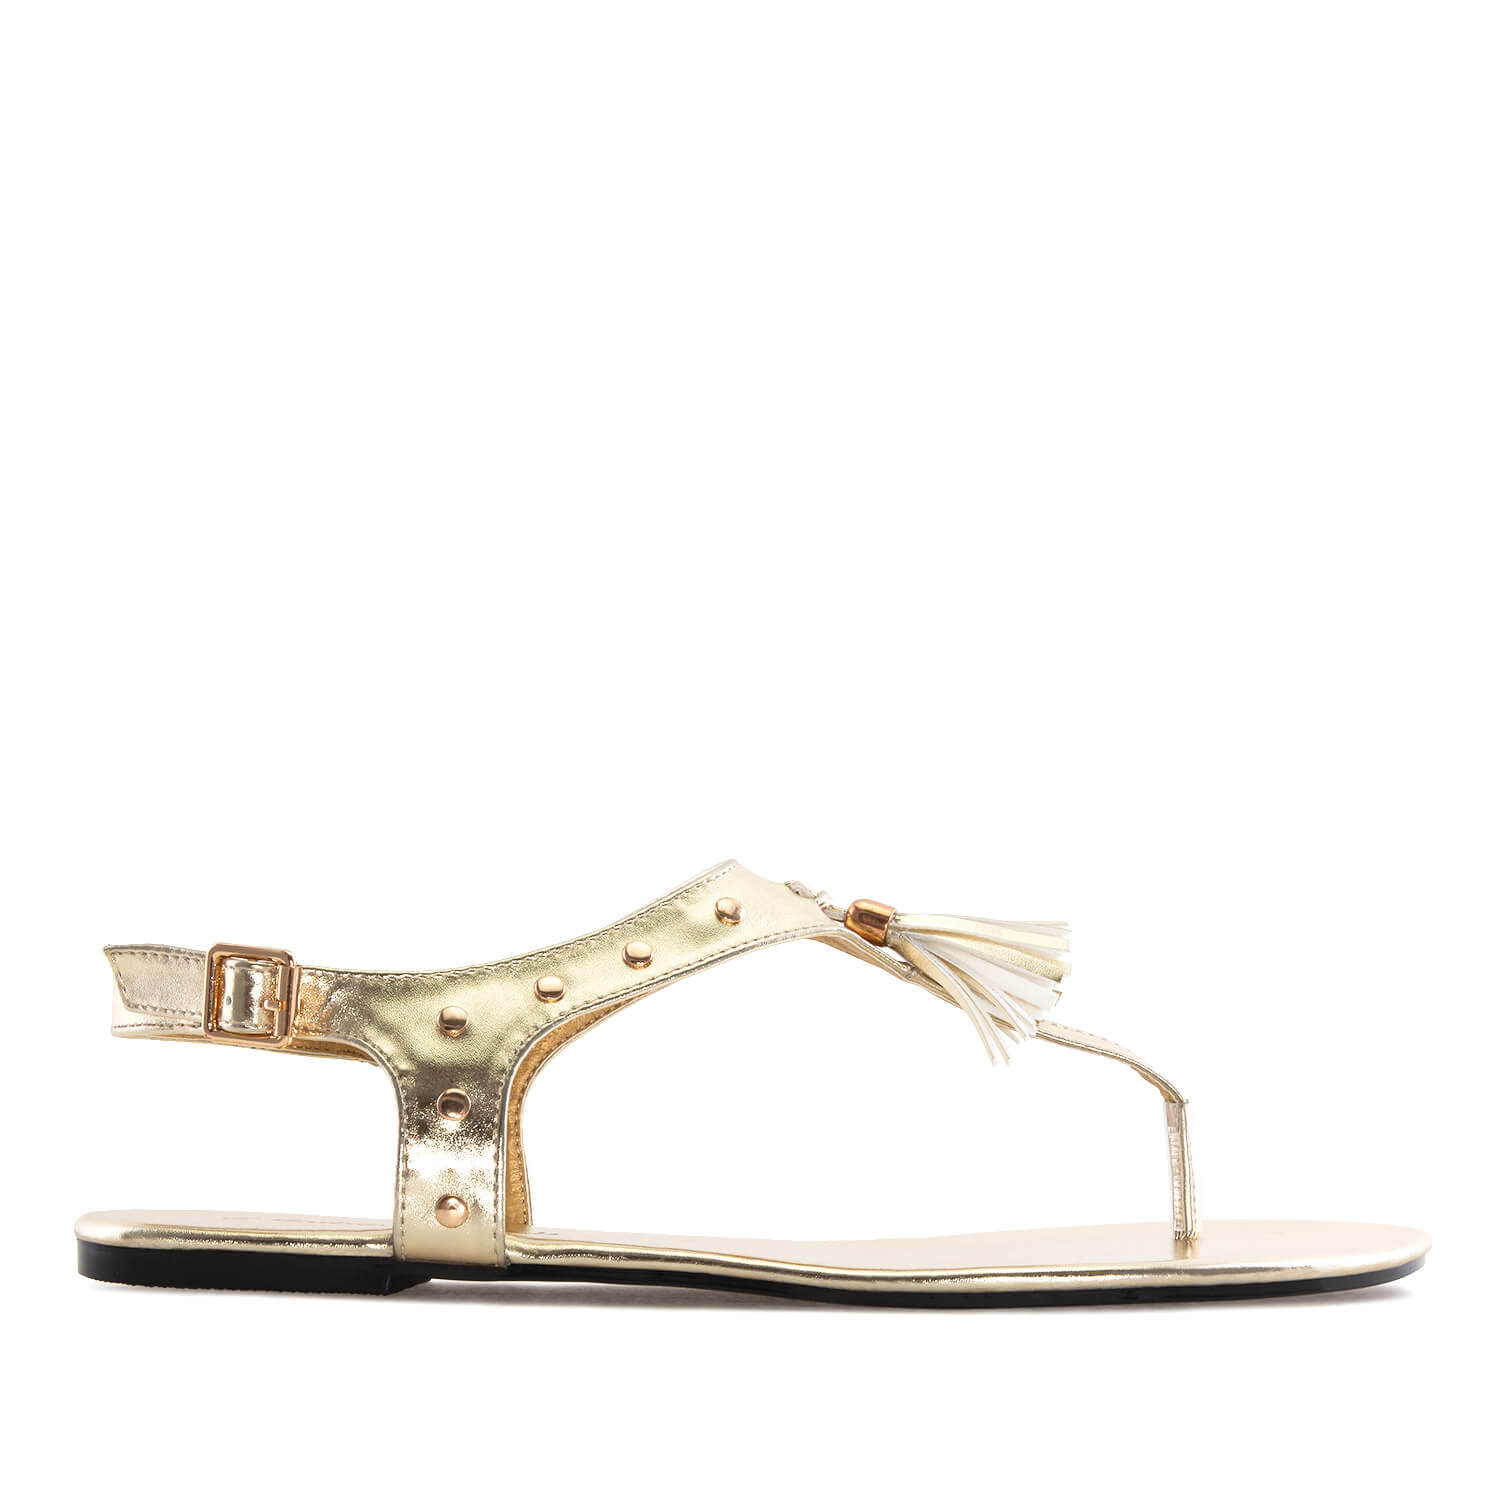 Sandalias T-Bar en Soft Oro.